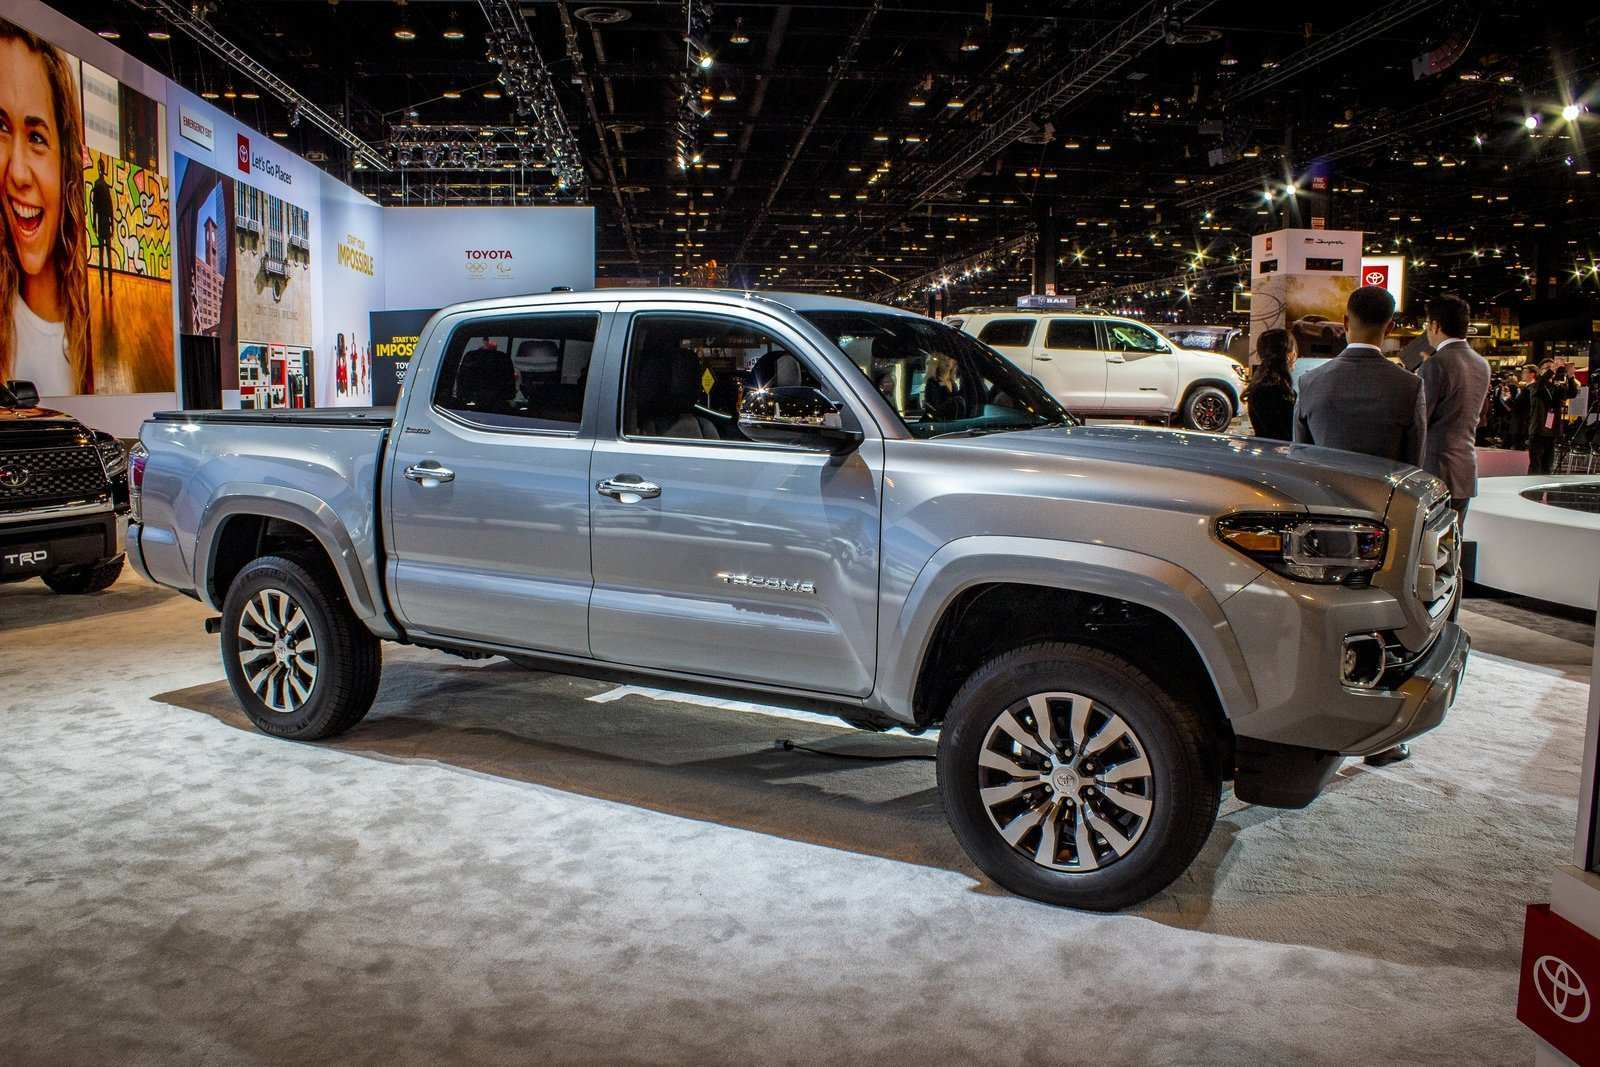 38 A Toyota Tacoma 2020 Release Date Redesign And Review